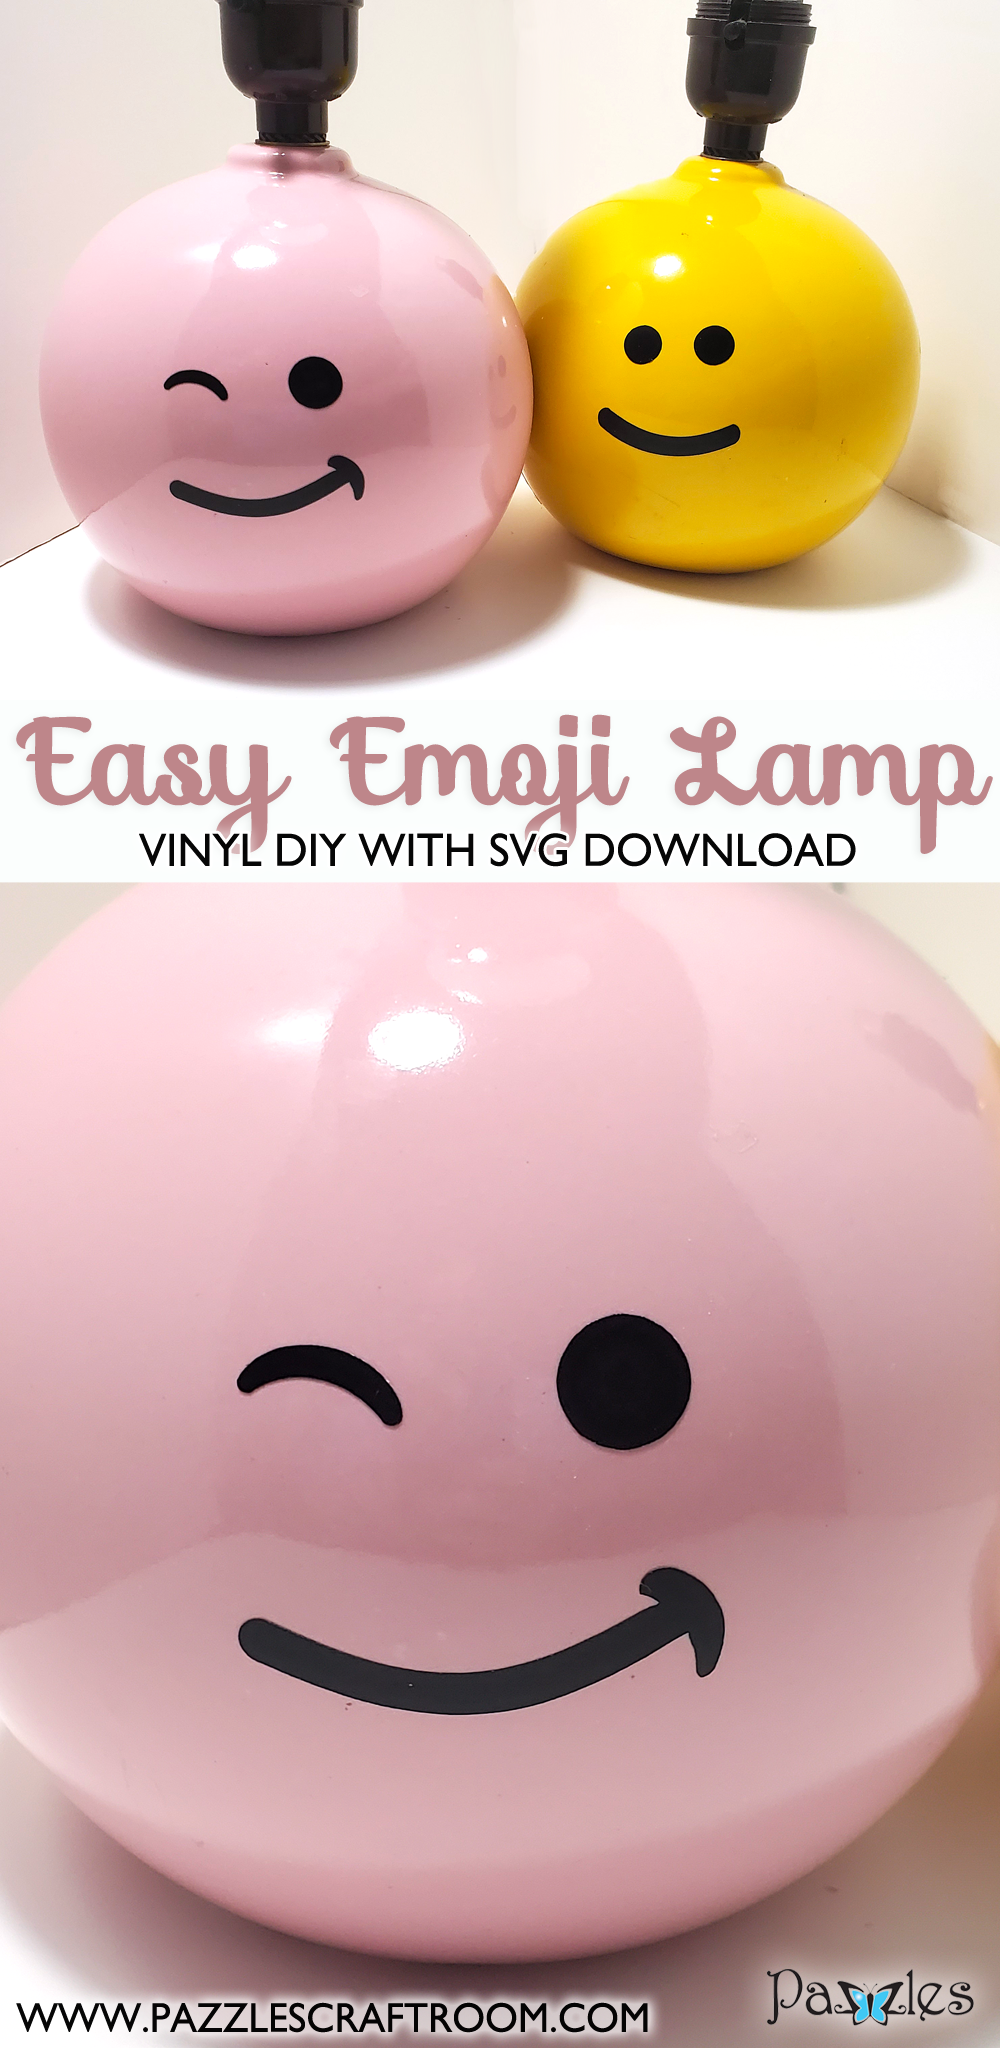 Pazzles DIY Emoji Lamp beginner-friendly vinyl project with SVG download.  Instant SVG download compatible with all major electronic cutters including Pazzles Inspiration, Cricut, and Silhouette Cameo. Design by Renee Smart